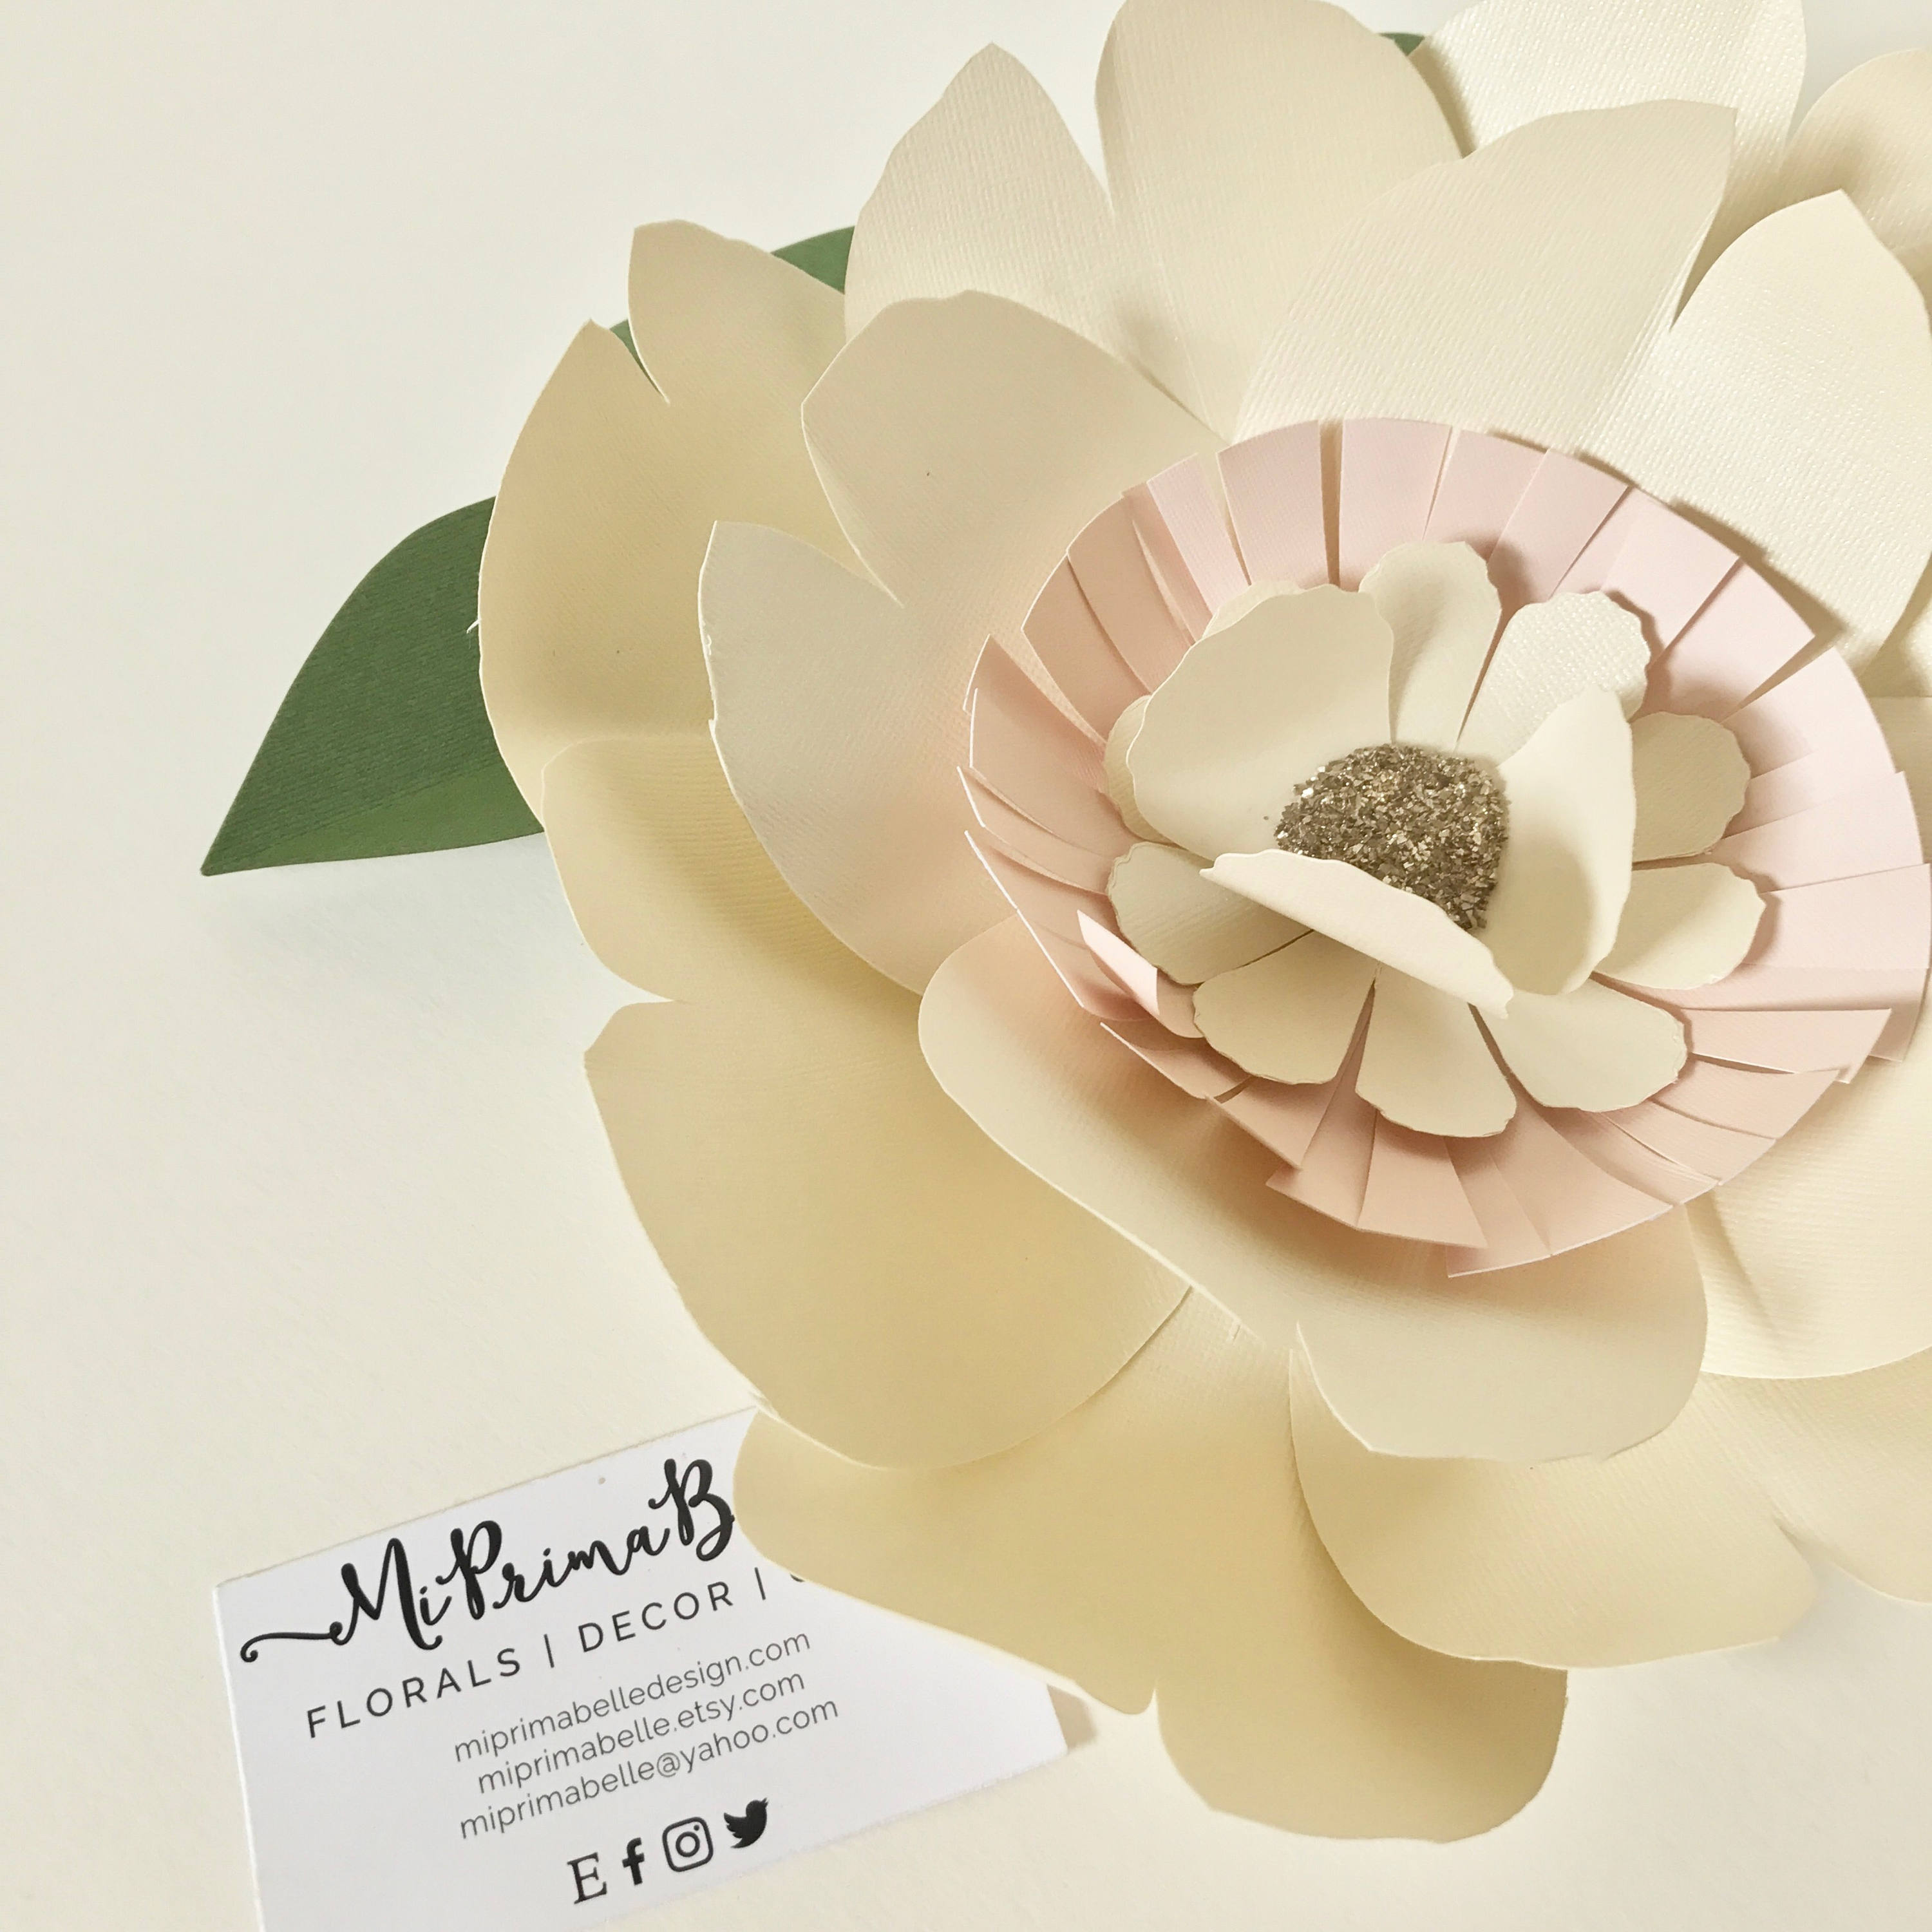 Paper flower sage green wall decor giant blush paper flower backdrop ...